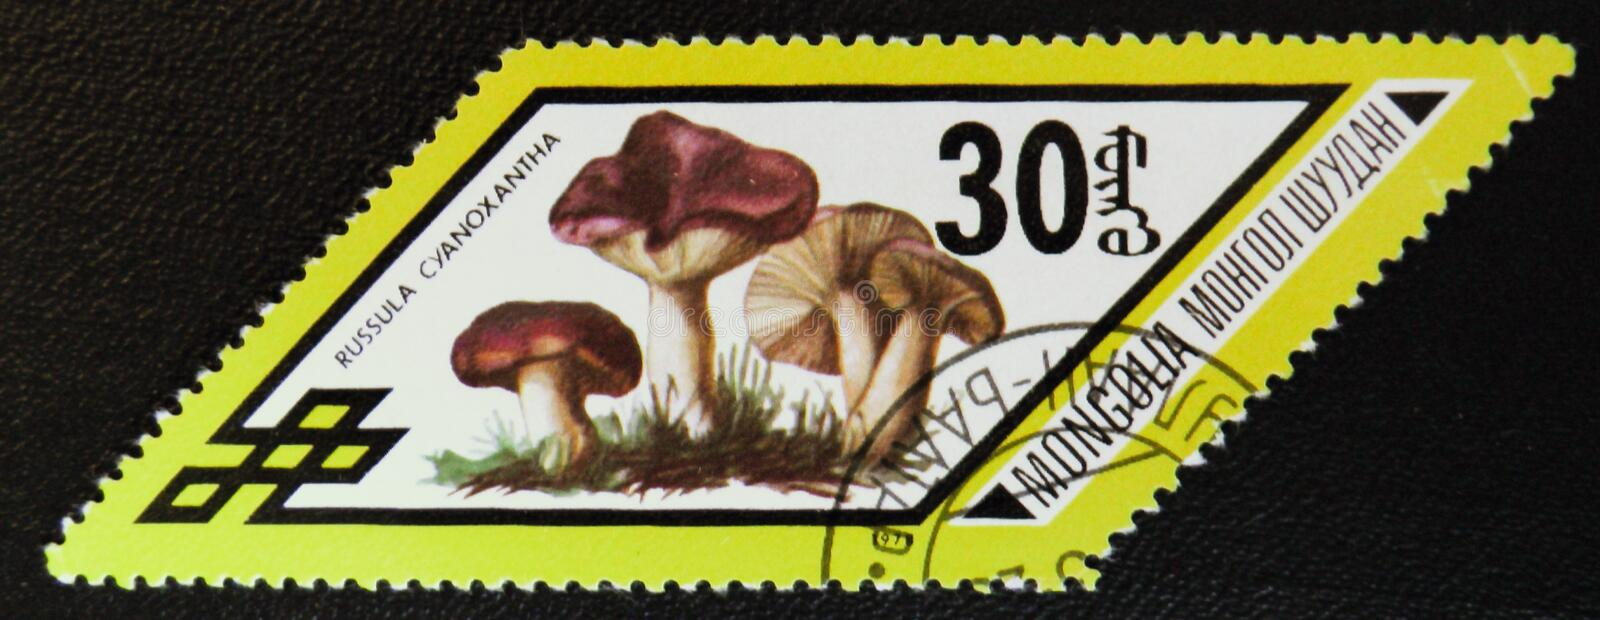 Russula cyanoxantha mushrooms, series, circa 1978. MOSCOW, RUSSIA - JANUARY 7, 2017: A stamp printed in Mongolia shows Russula cyanoxantha mushrooms, series stock photo